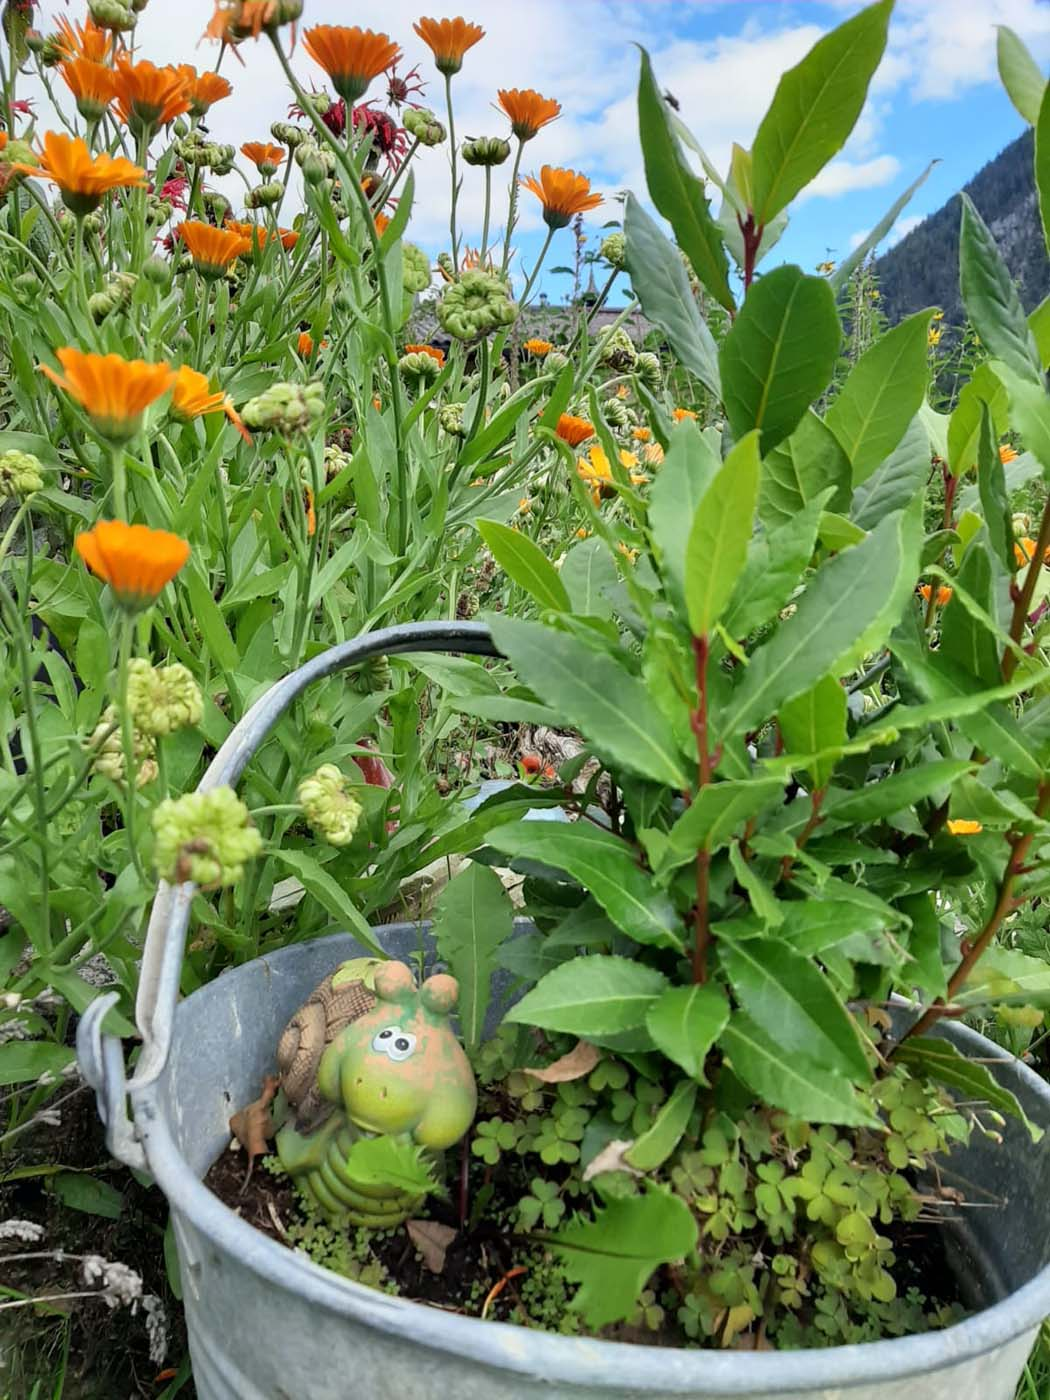 Pichlgut in Radstadt - the herb paradise